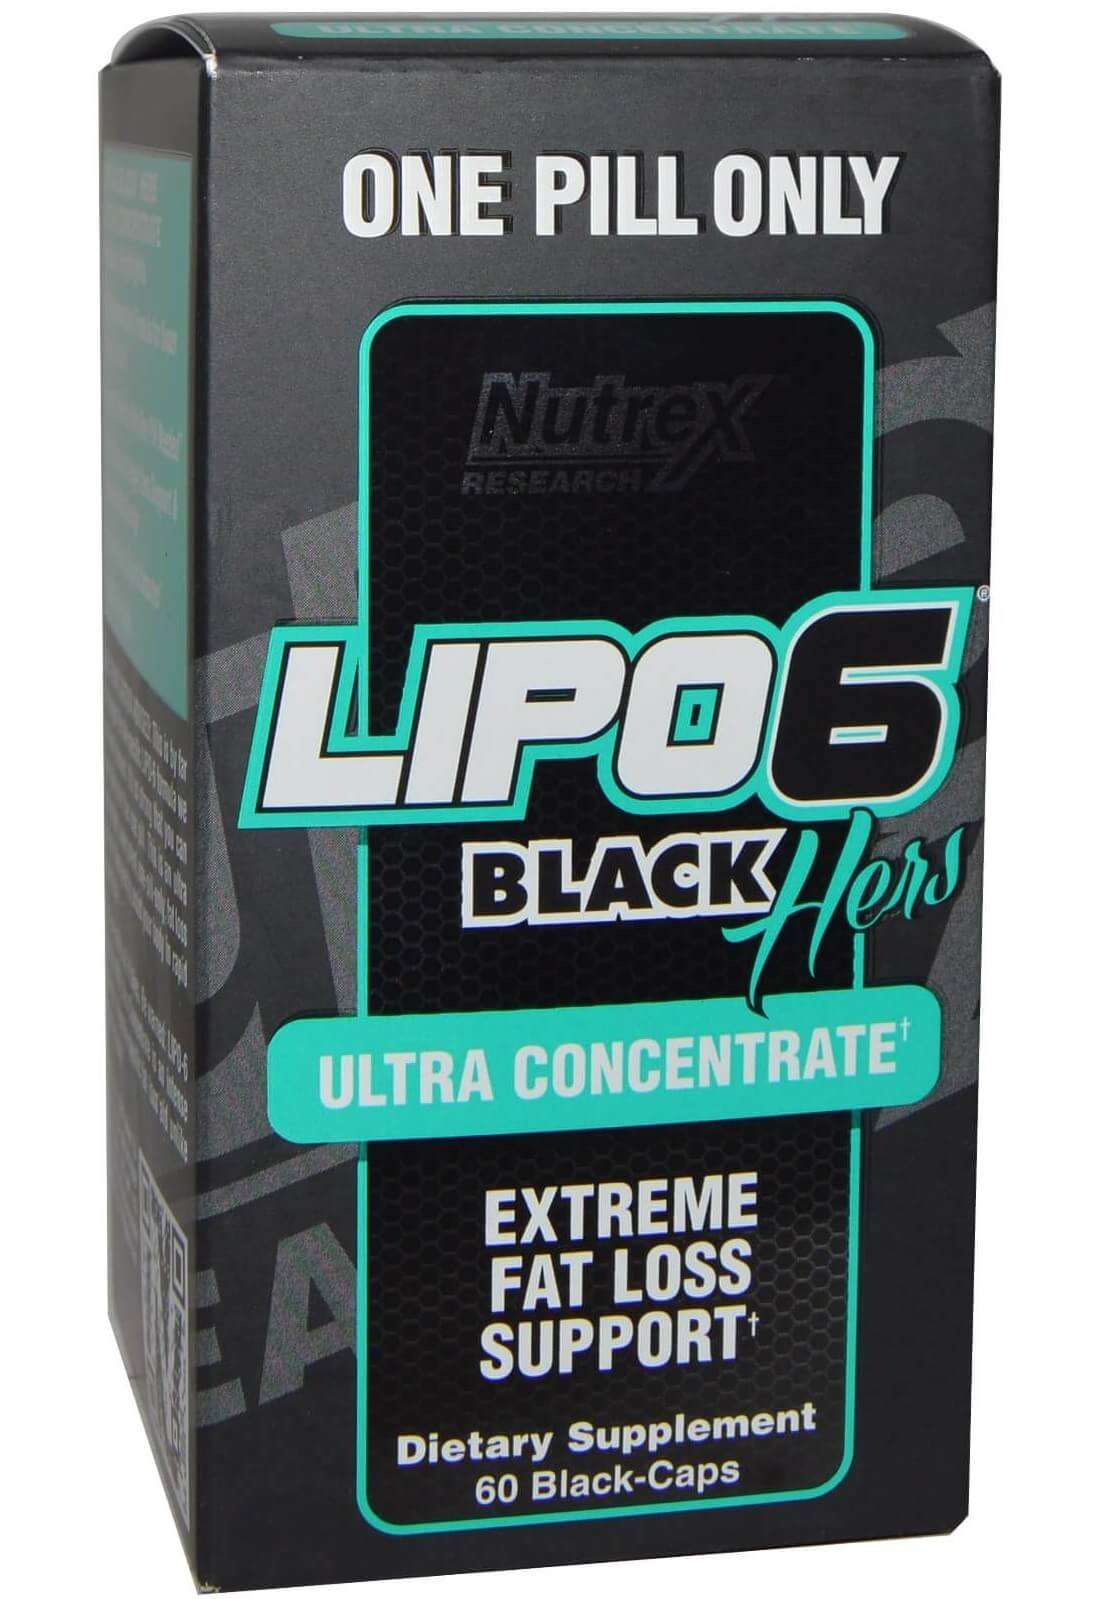 Lipo 6 Black Hers Ultra Concentrate (IMPORTADO) - 60 caps